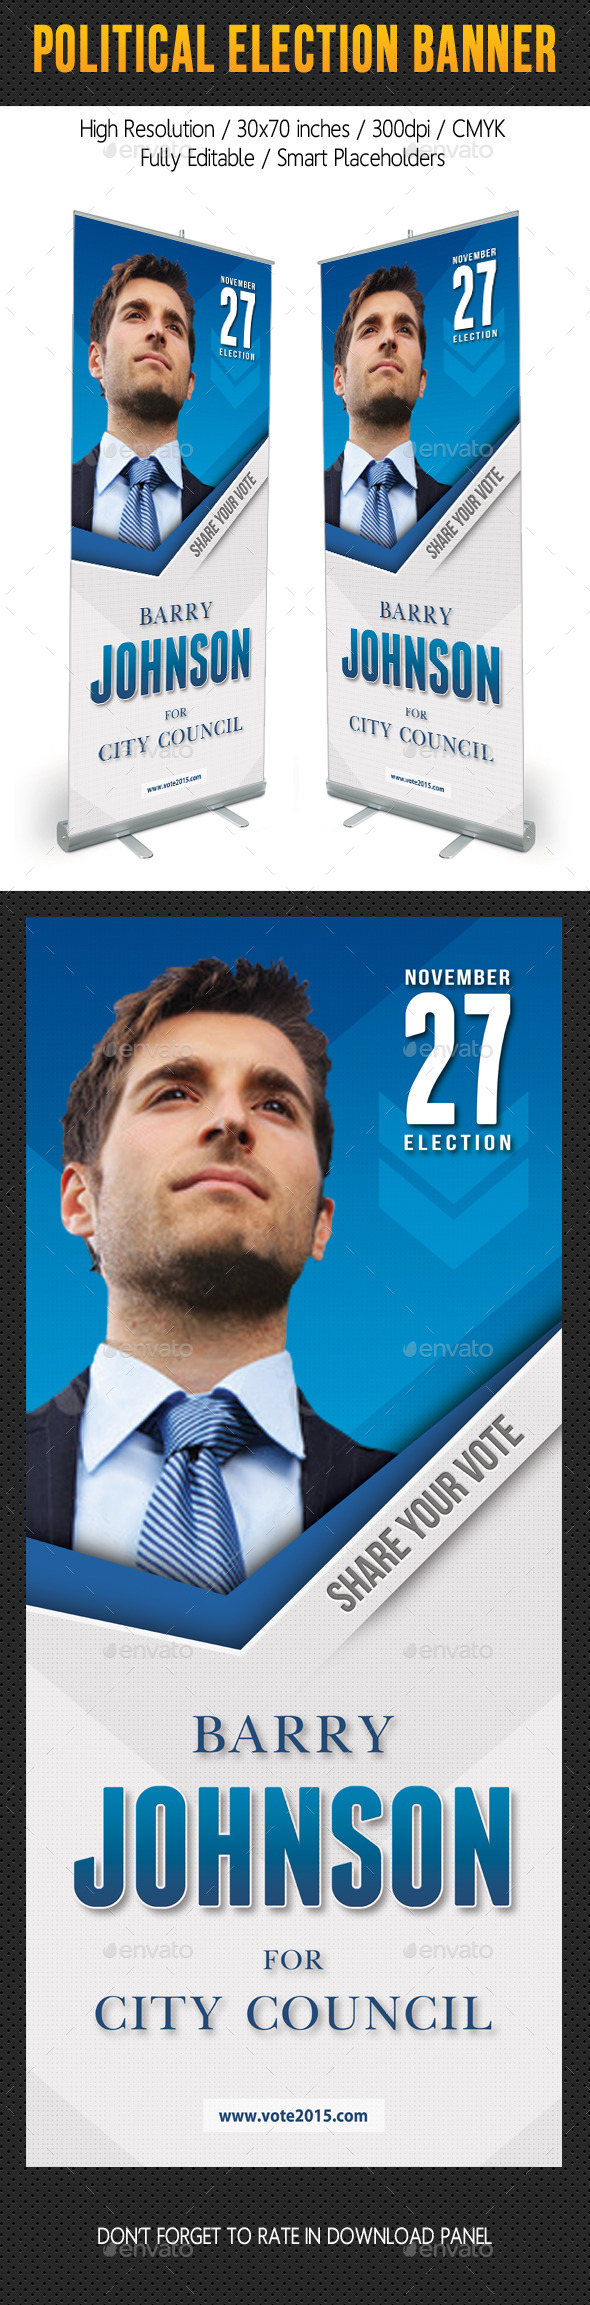 GraphicRiver Political Election Banner Template V2 11047106